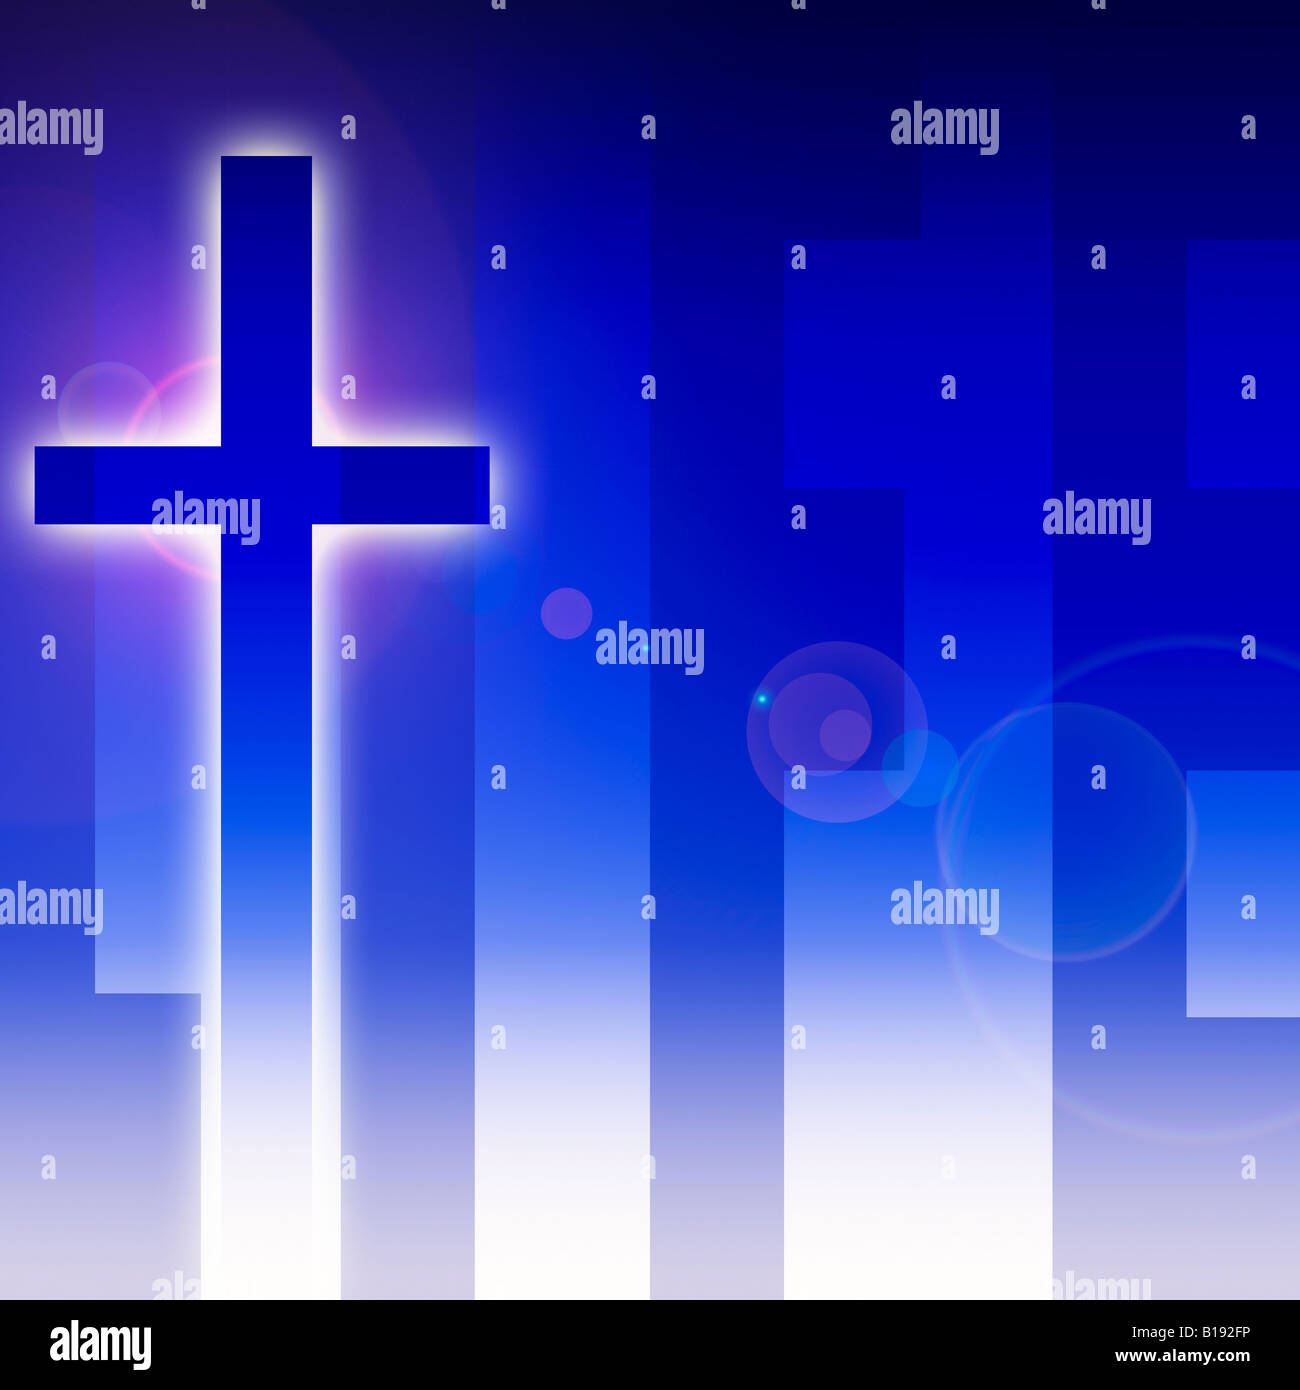 Life and the cross - Stock Image